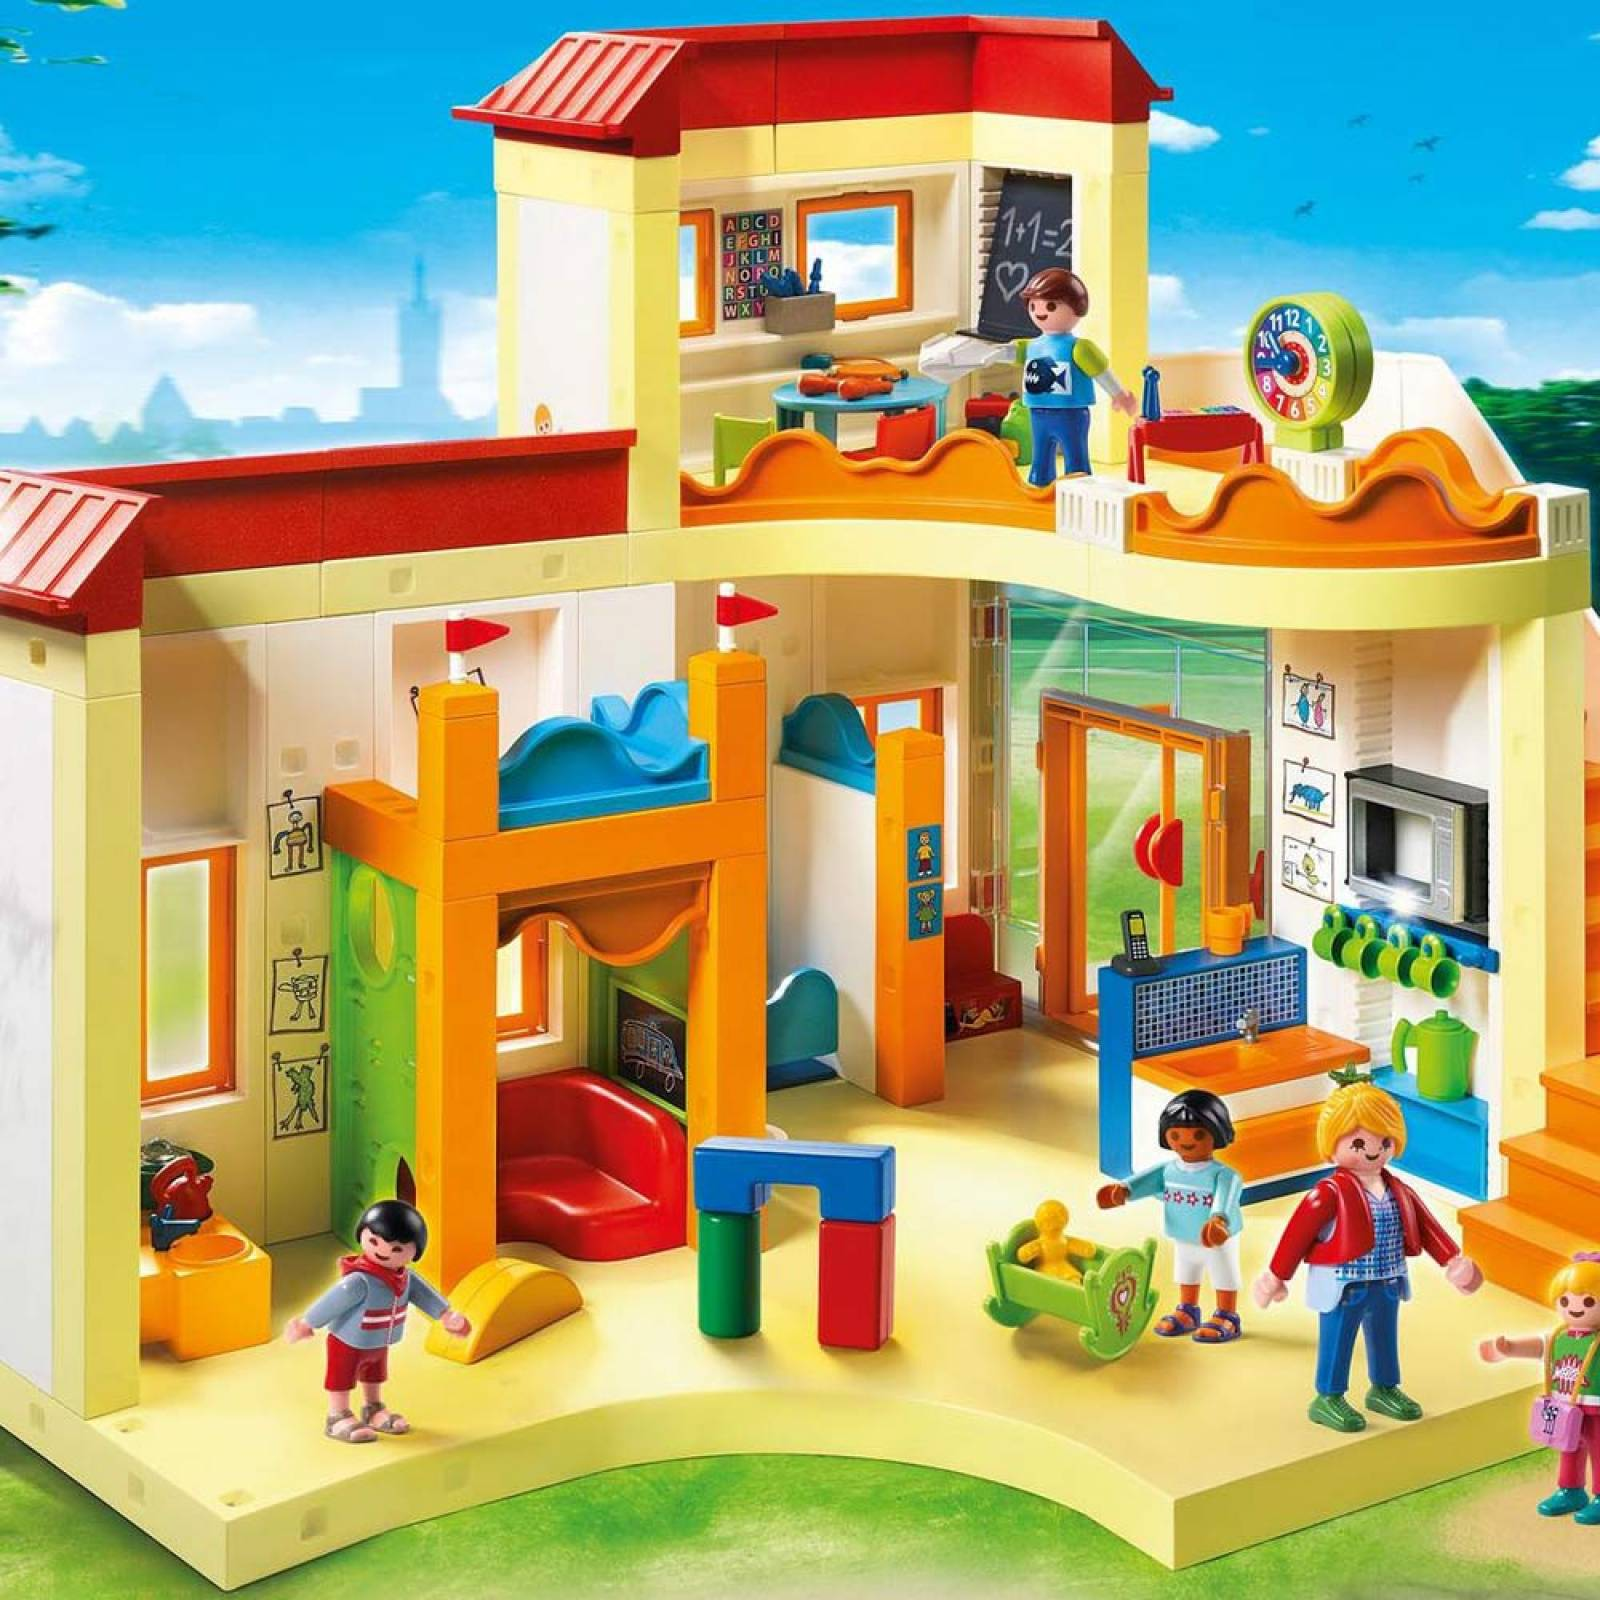 Playmobil Sunshine Preschool City Life 5567 Age 4+